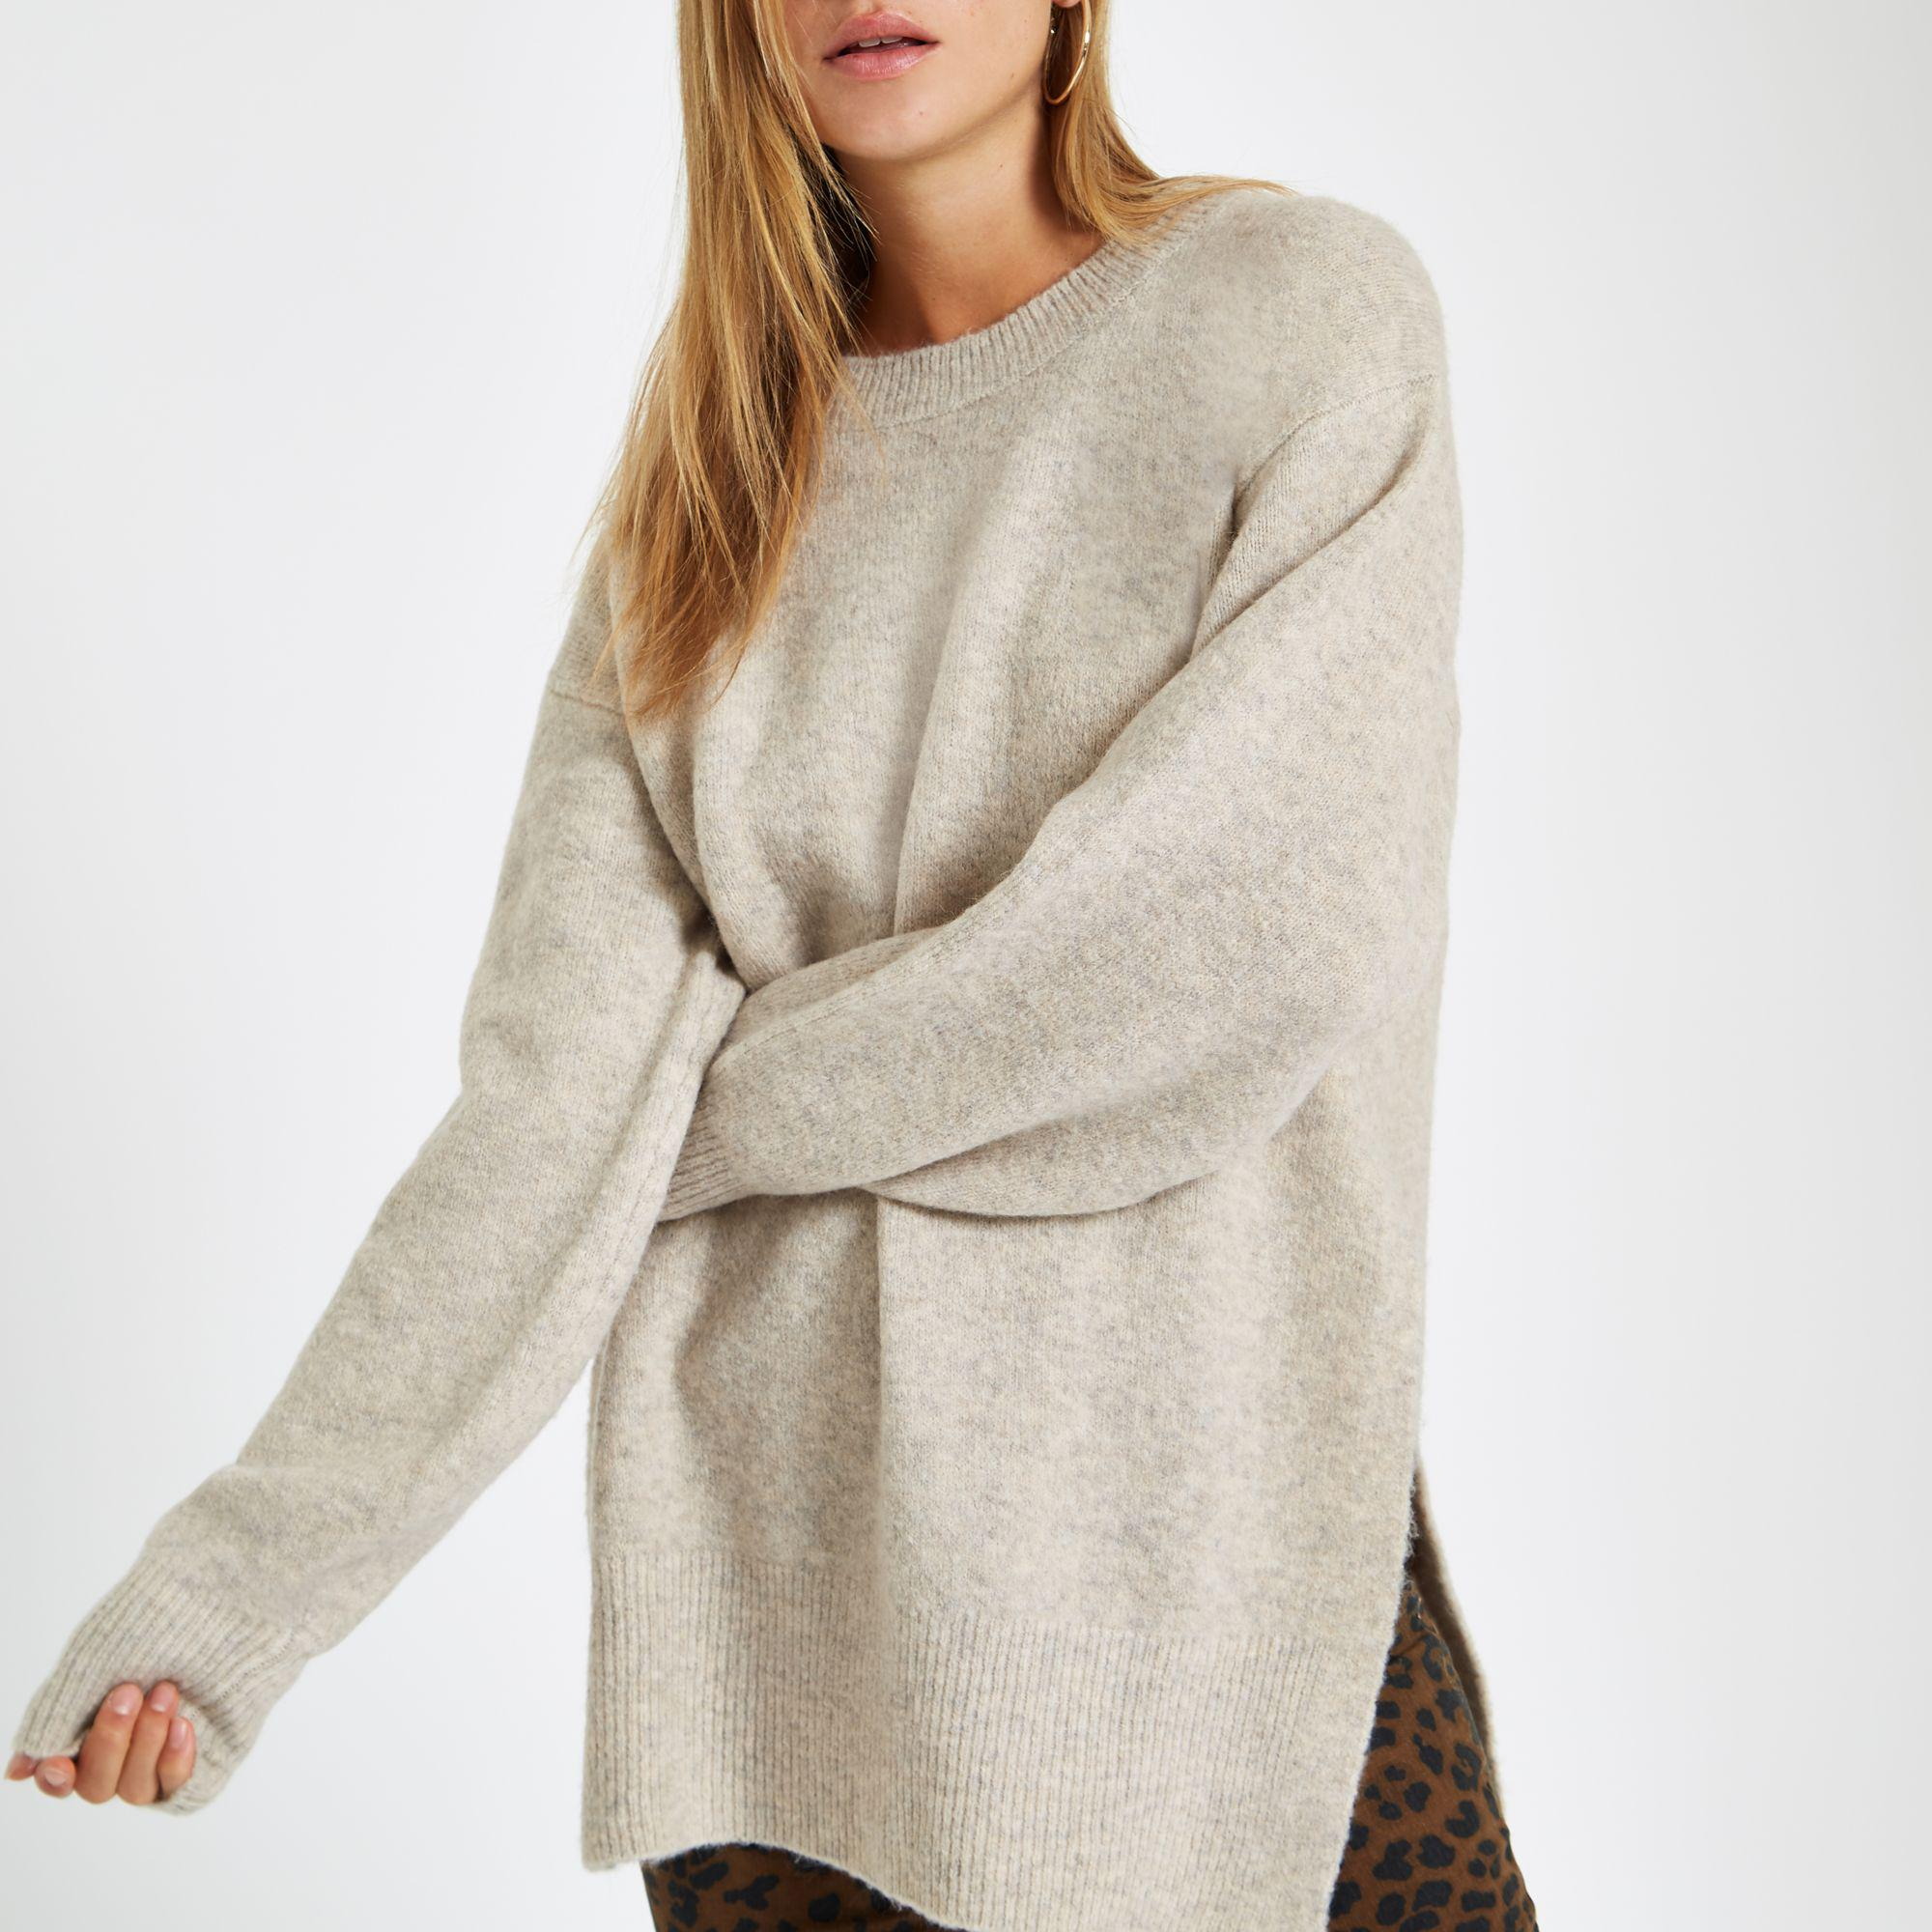 b5a32ede581563 River Island Split Side Knit Jumper in Natural - Lyst